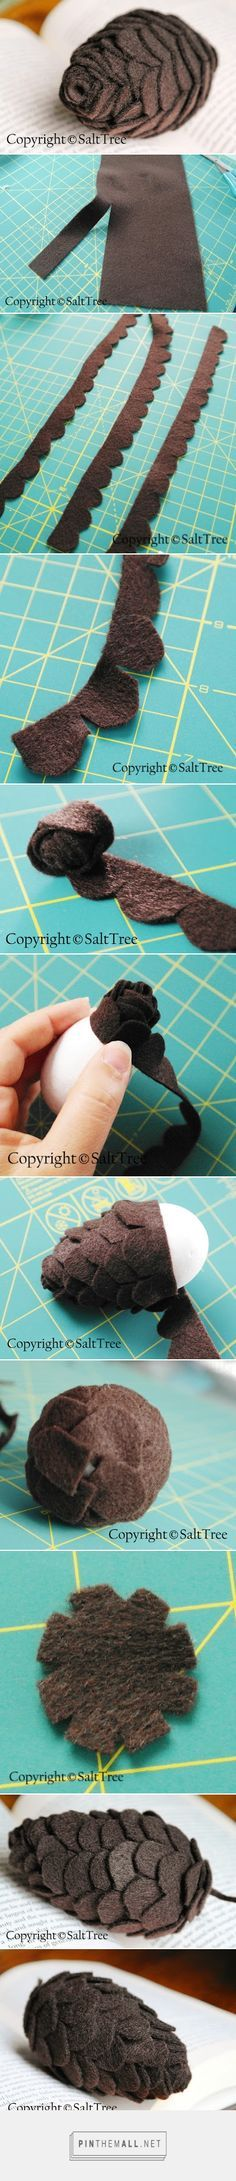 Felt Pinecone Tutorial – Victor - created via http://pinthemall.net                                                                                                                                                                                 More